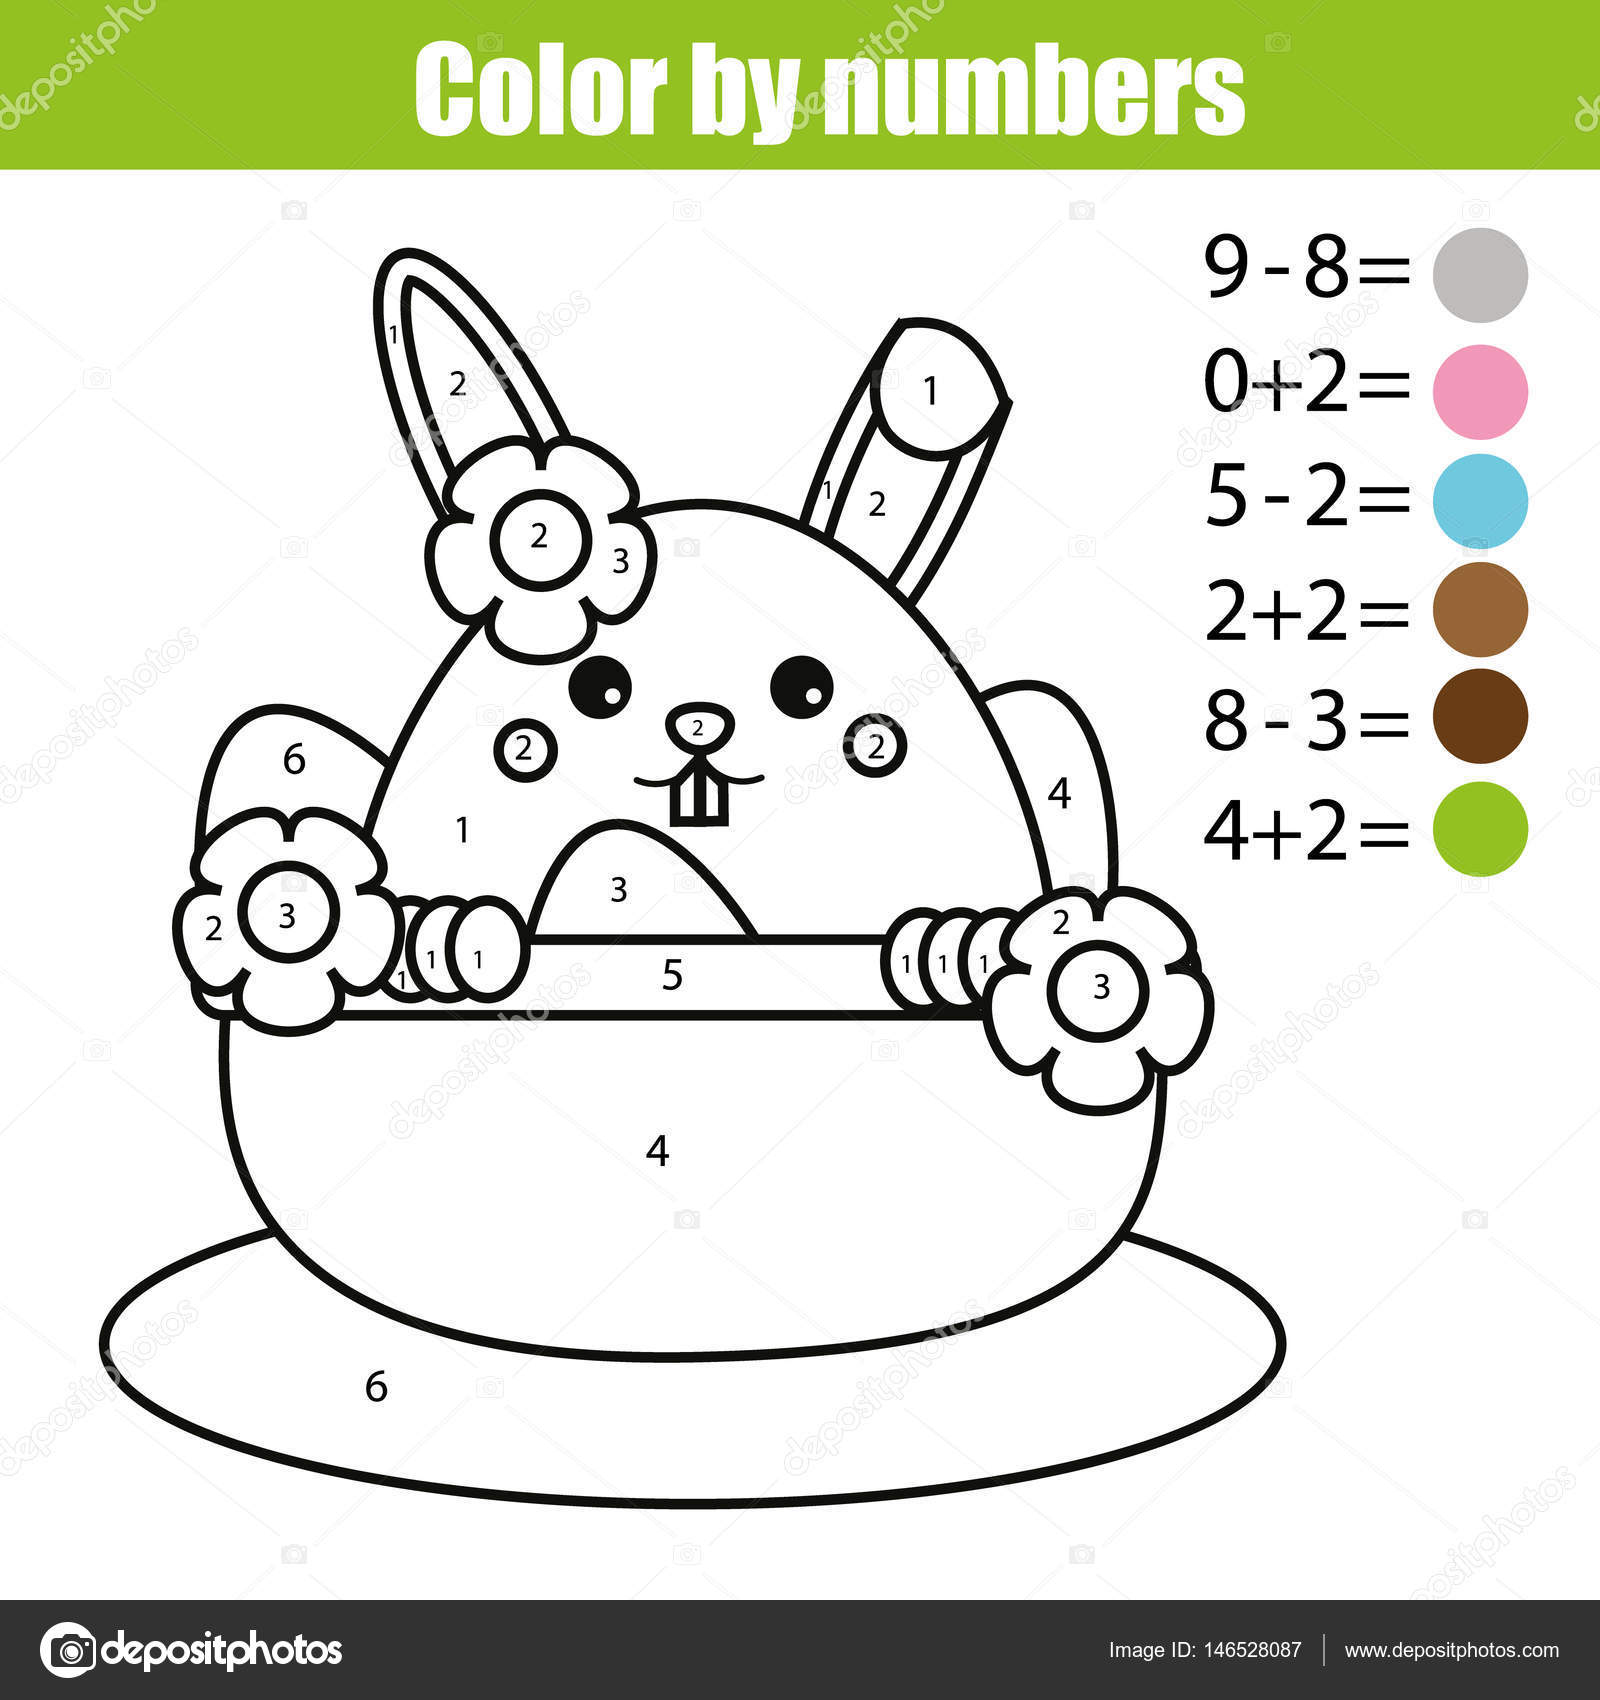 Coloring Page With Easter Bunny Character Color By Numbers Math Educational Children Game Drawing Kids Activity Printable Sheet Rabbit In Busket